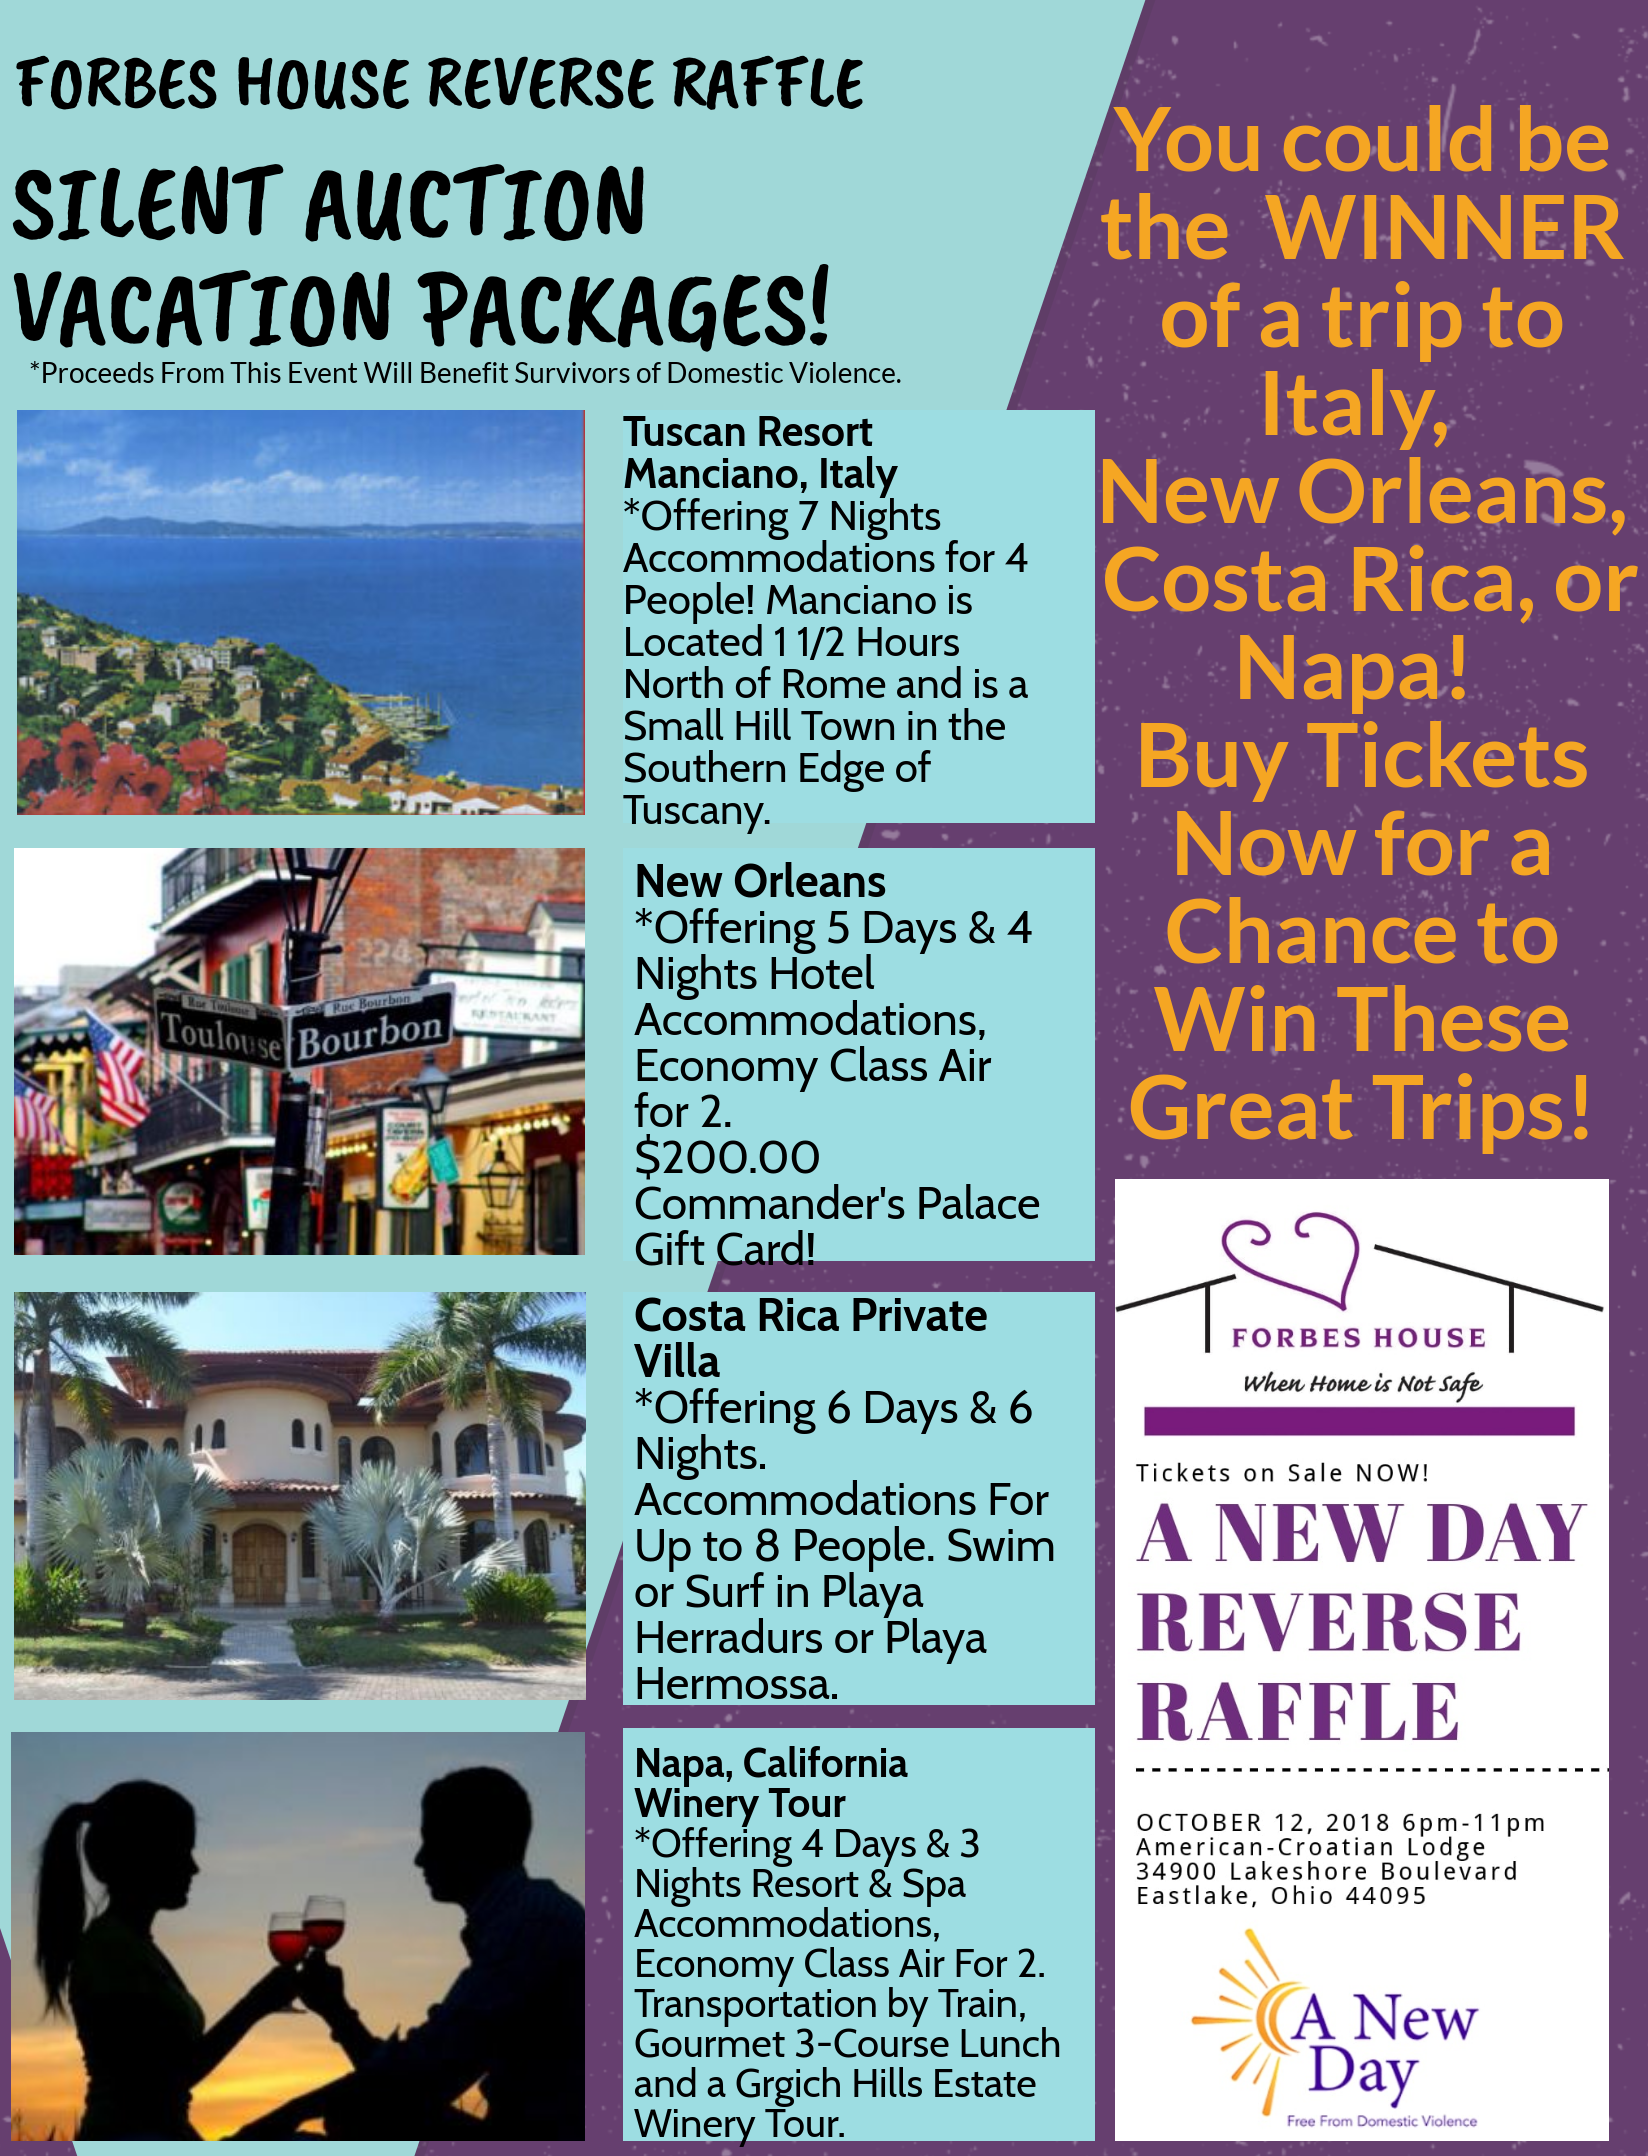 Vacation Packages - Forbes House